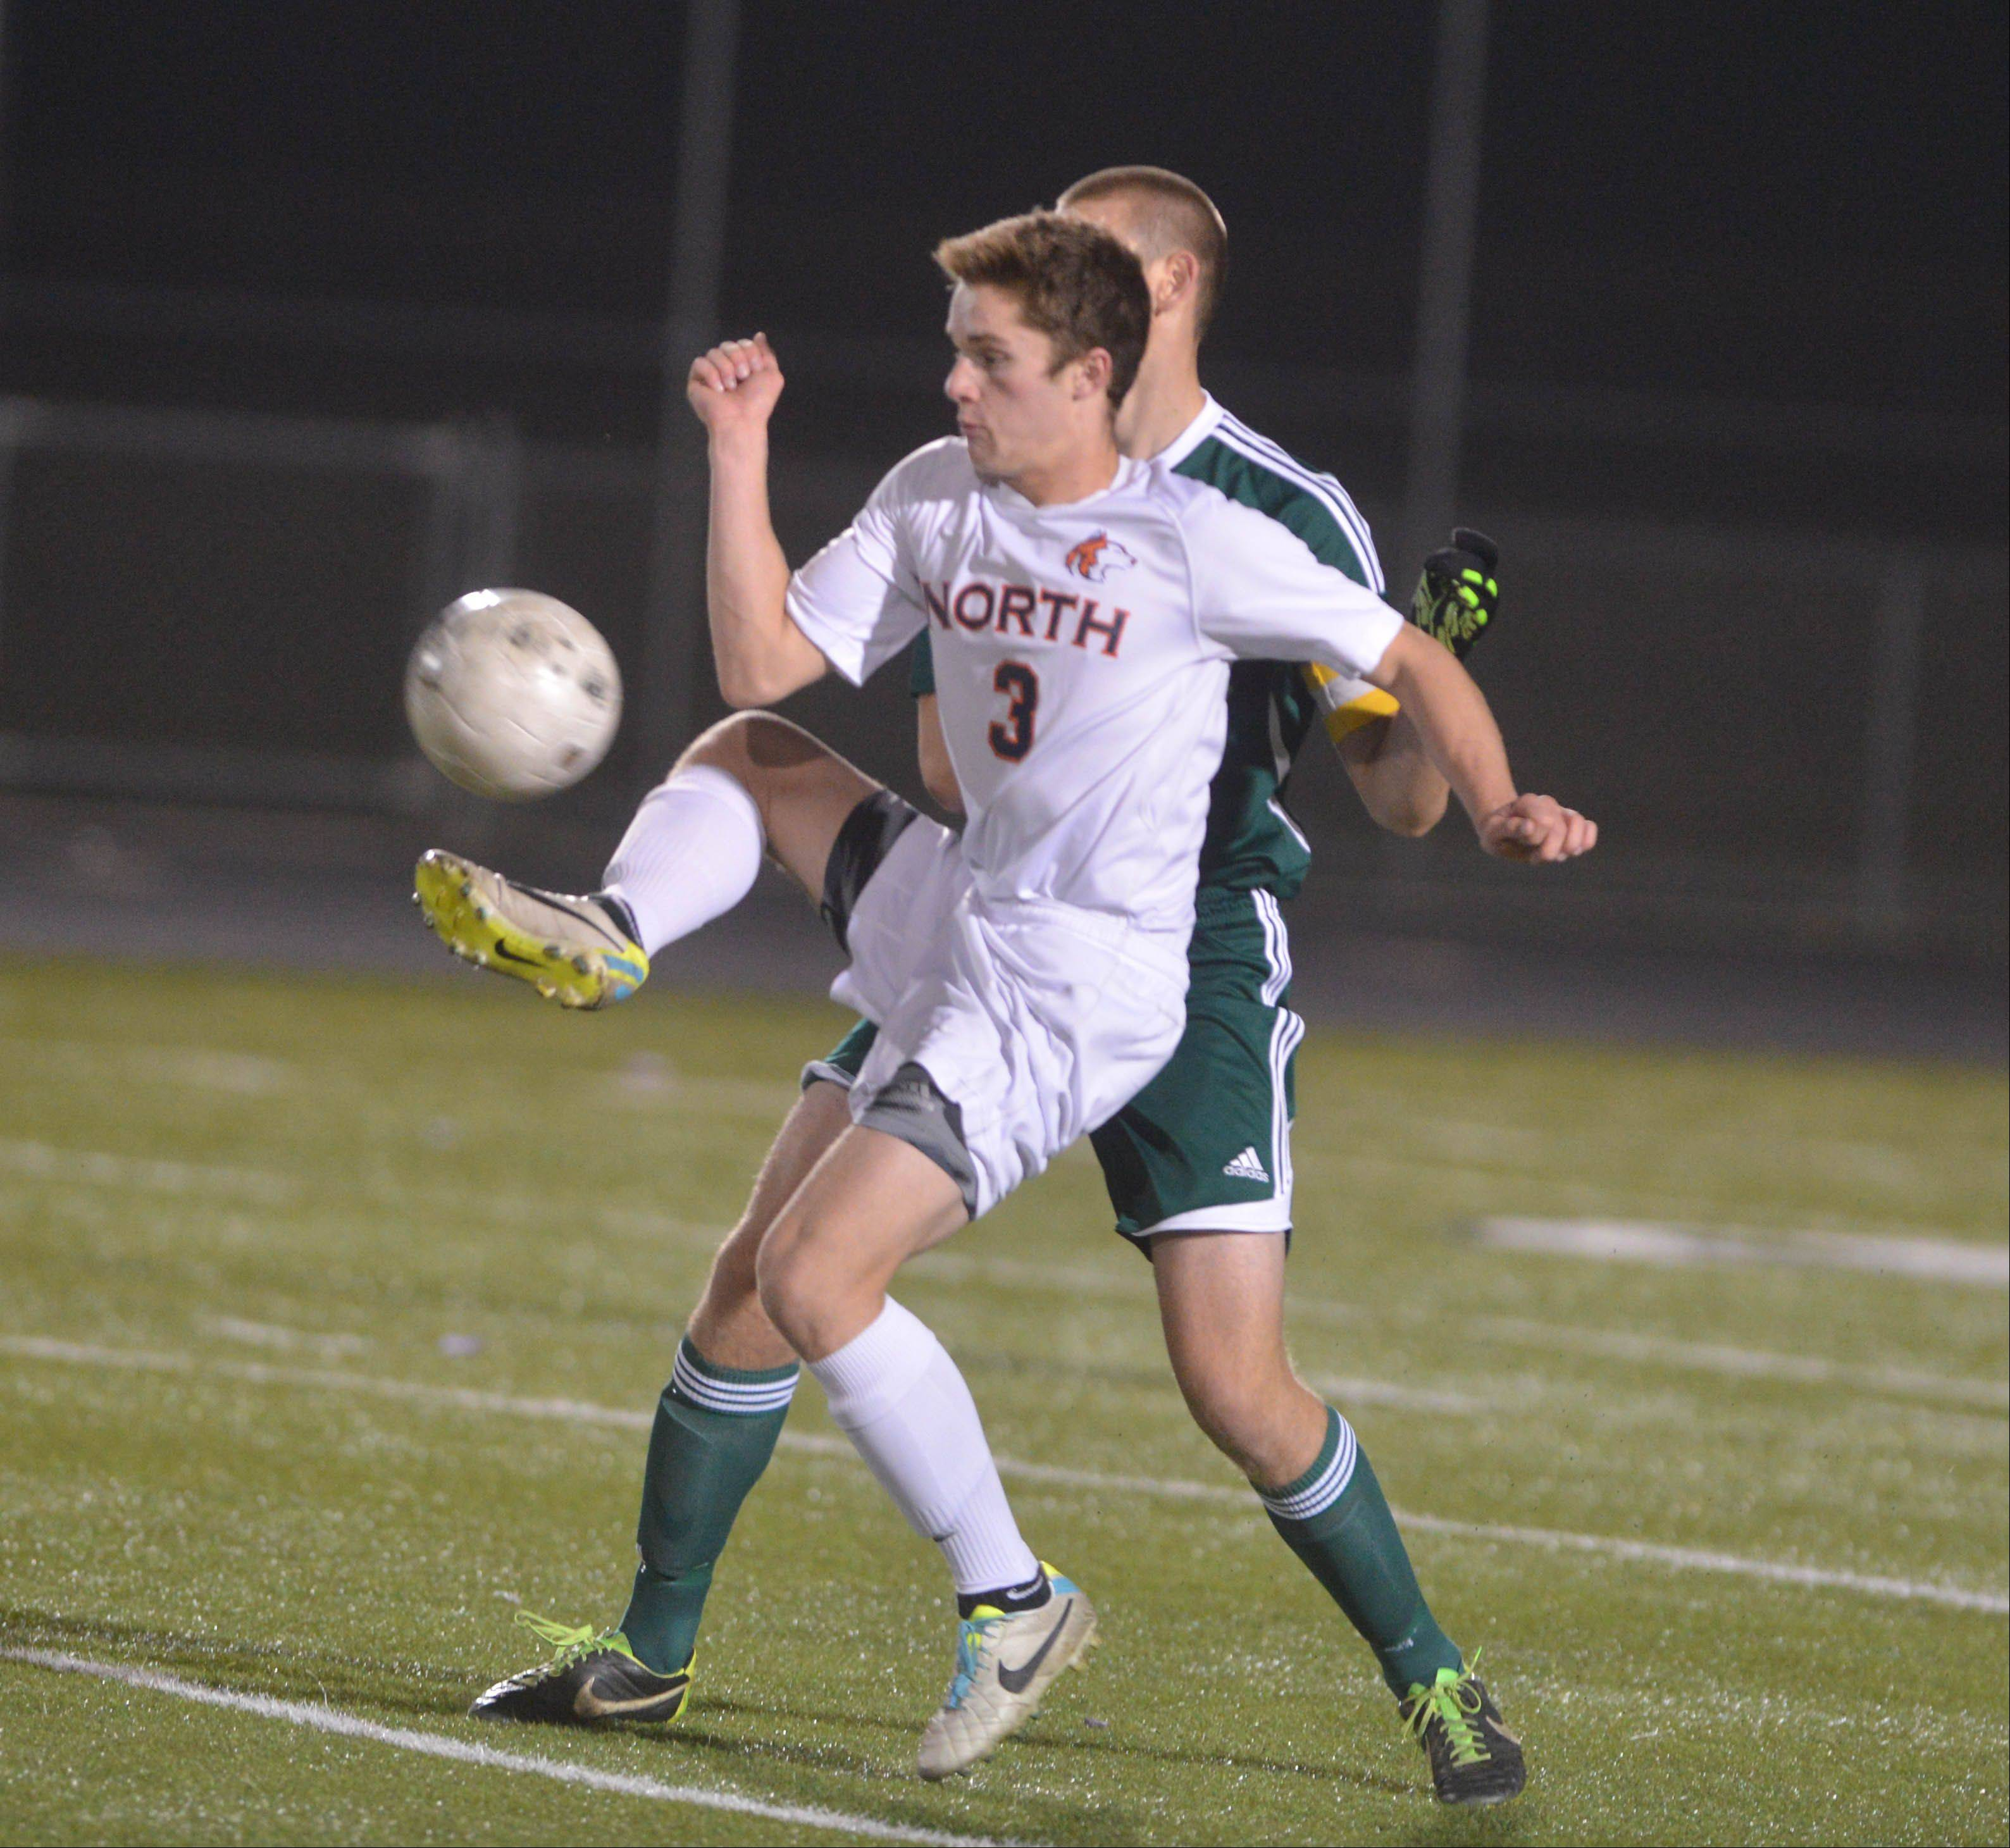 Chris Ensign of Naperville North moves the ball during the Naperville North vs. Waubonsie Valley boys soccer Class 3A Metea Valley sectional semifinals Tuesday.